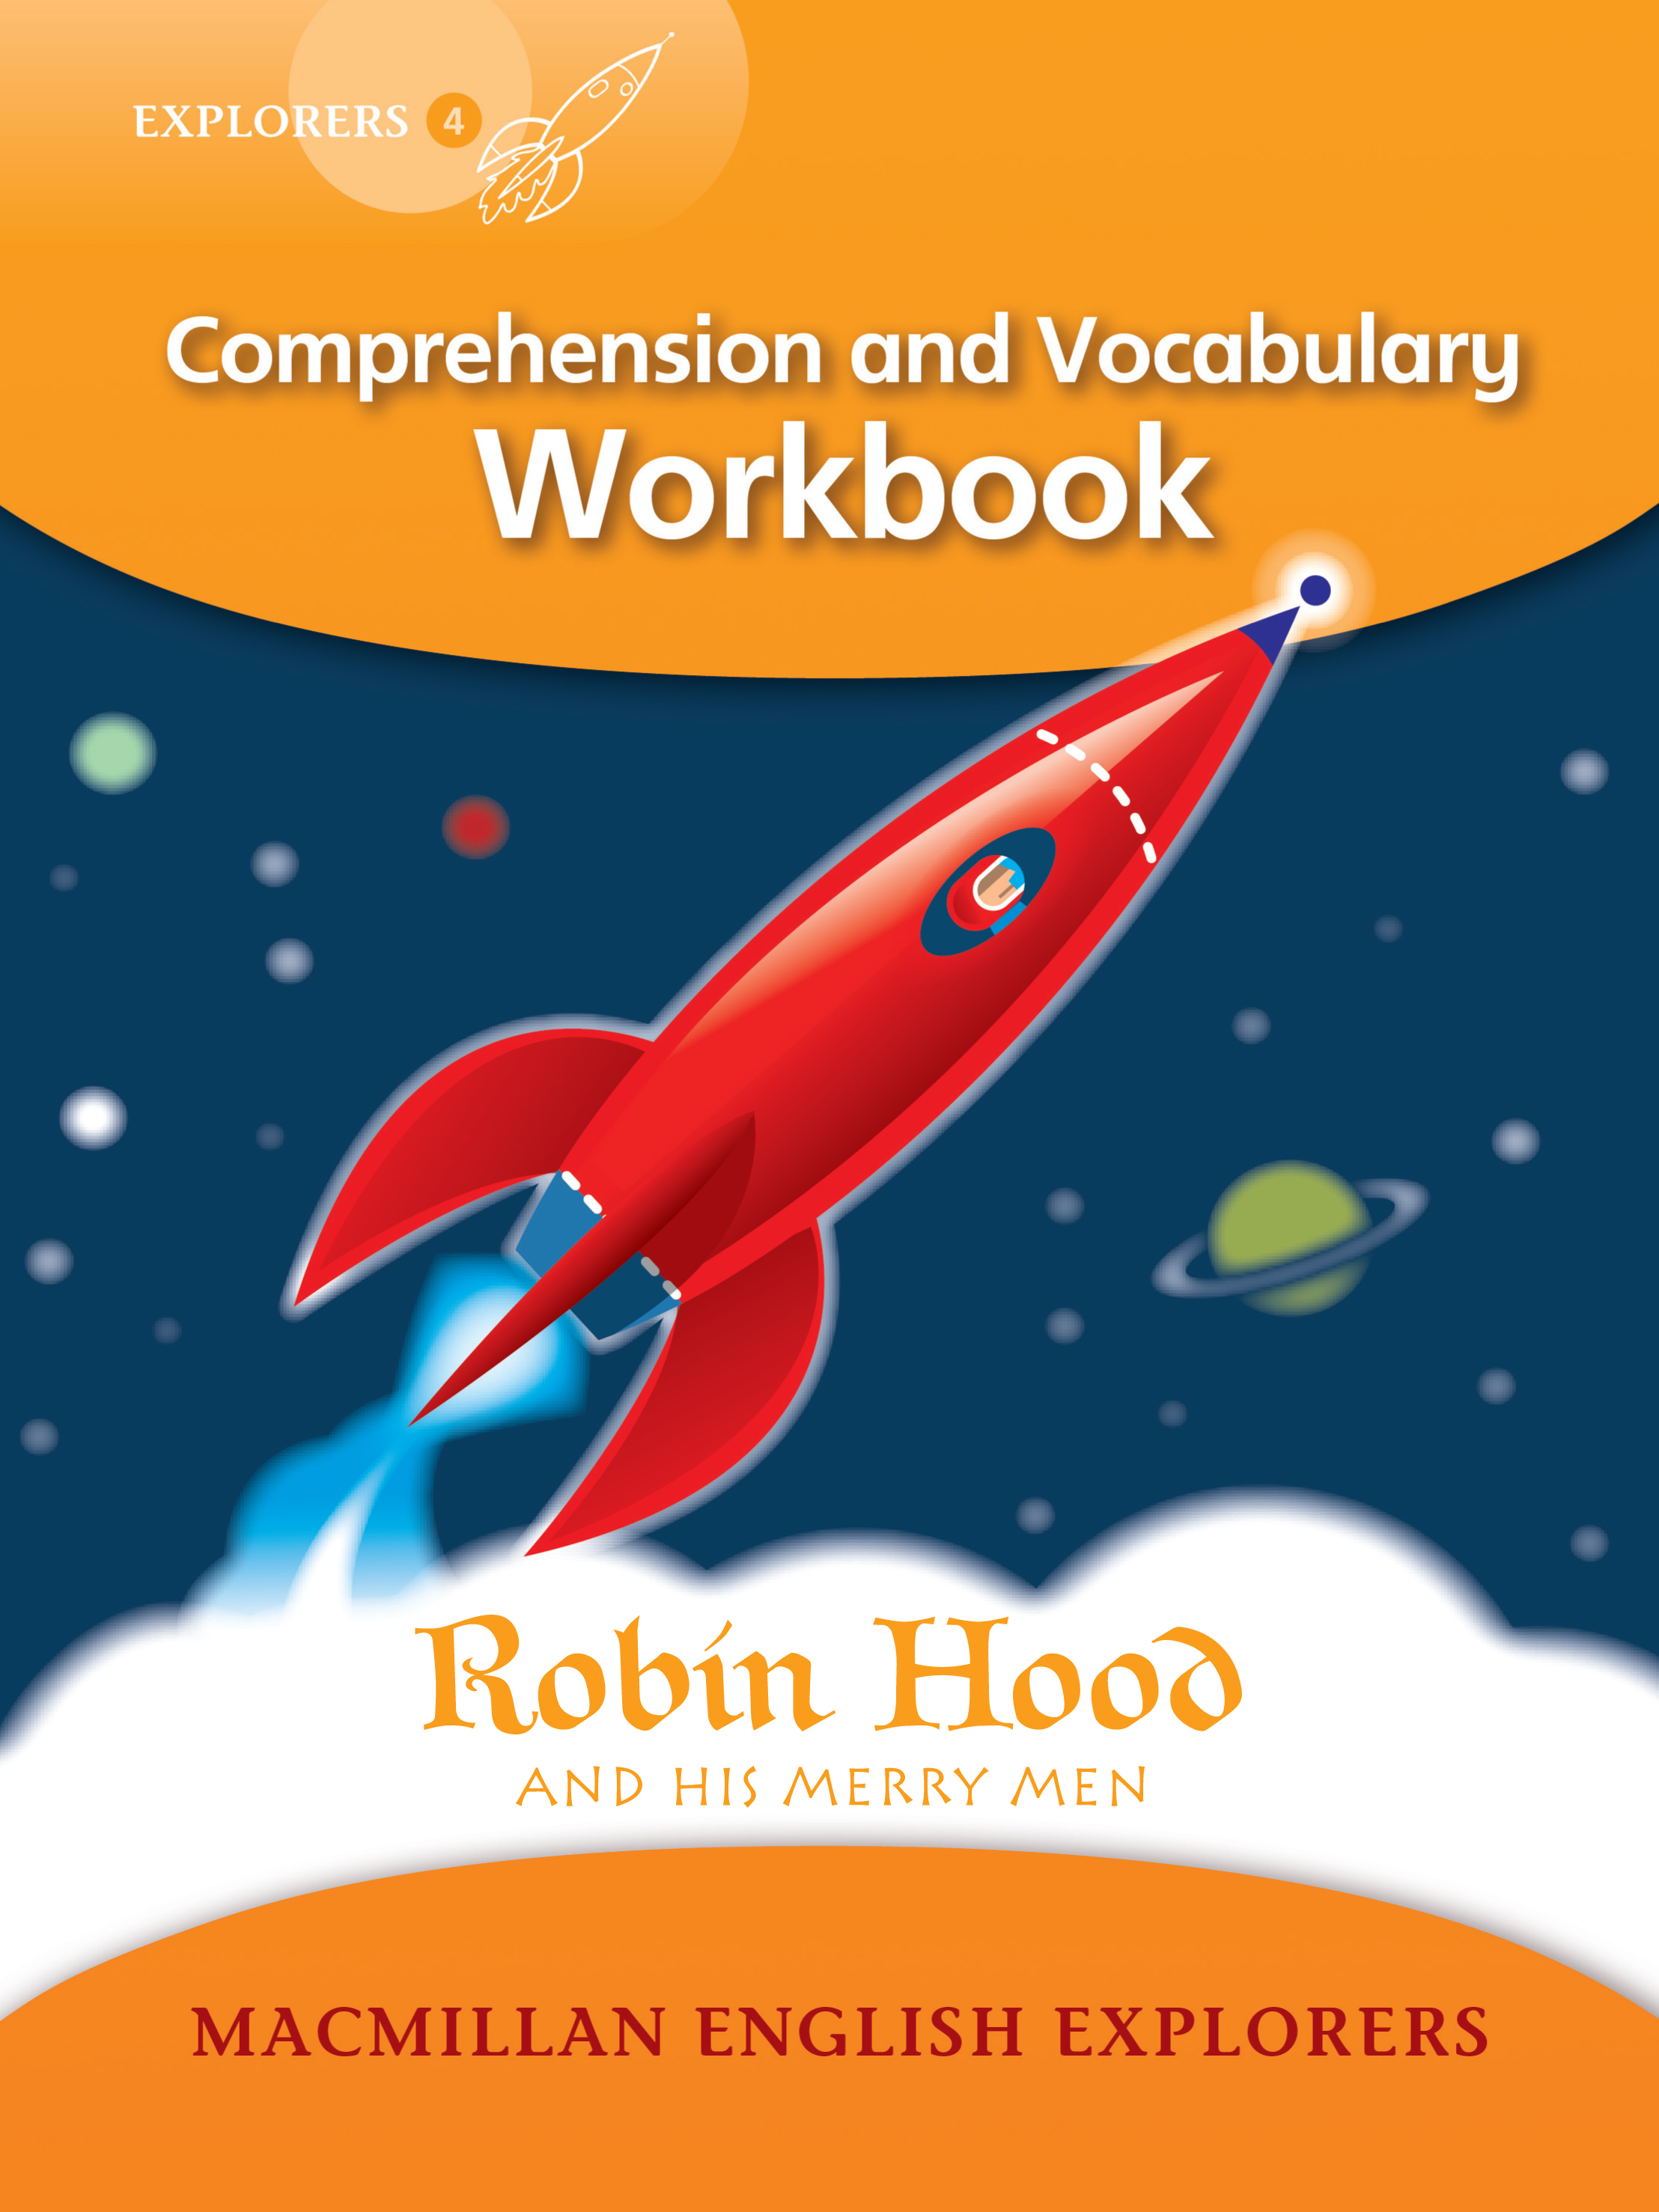 Explorers 4: Robin Hood and his Merry Men Workbook